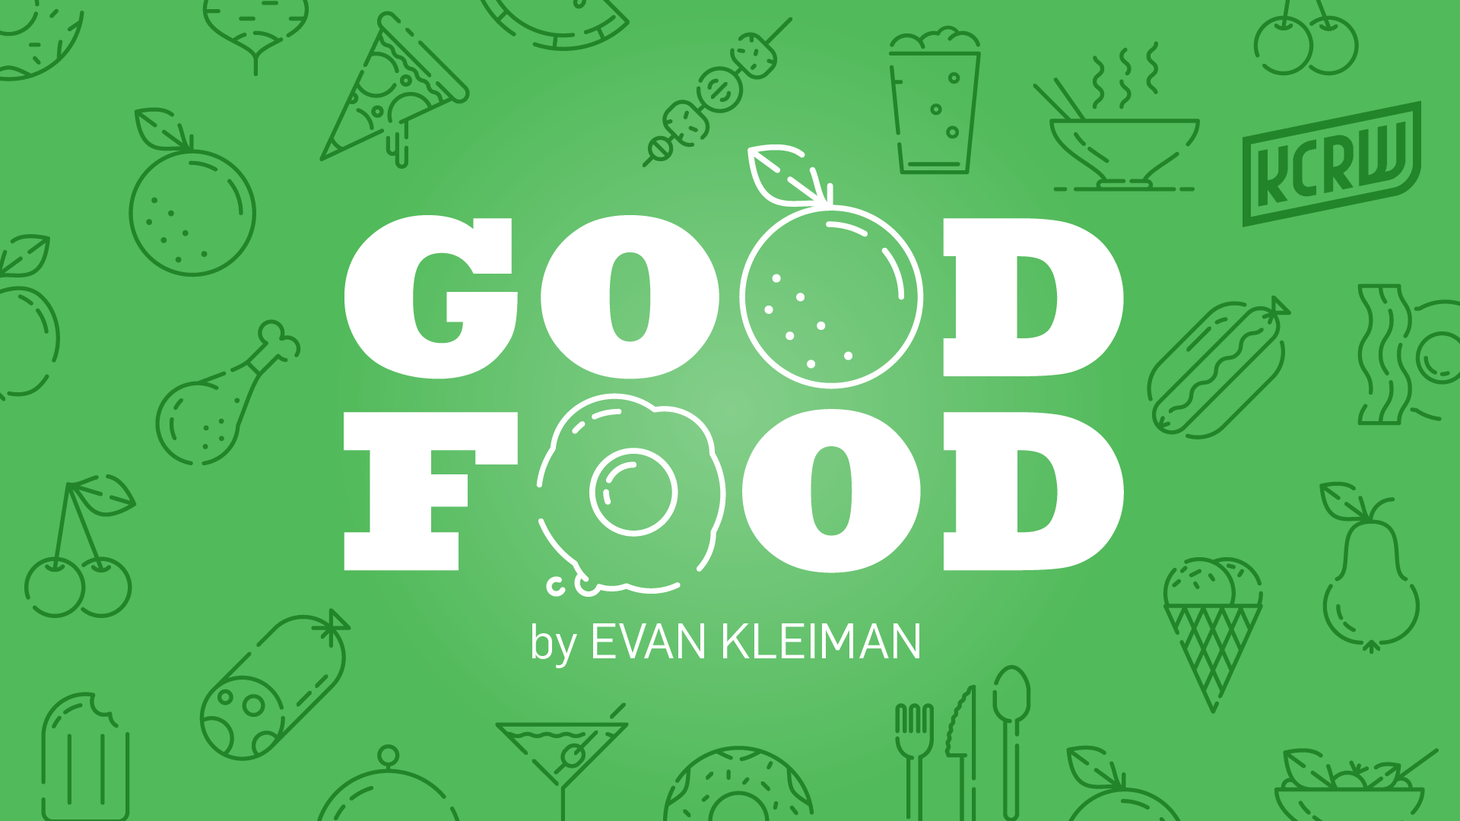 In the latest Good Food video Evan Kleiman shows you how easy it is to take your food waste and turn it into rich soil and fertilizer. Compost with specialized worms or just earth worms - Evan will show you both ways to do good.